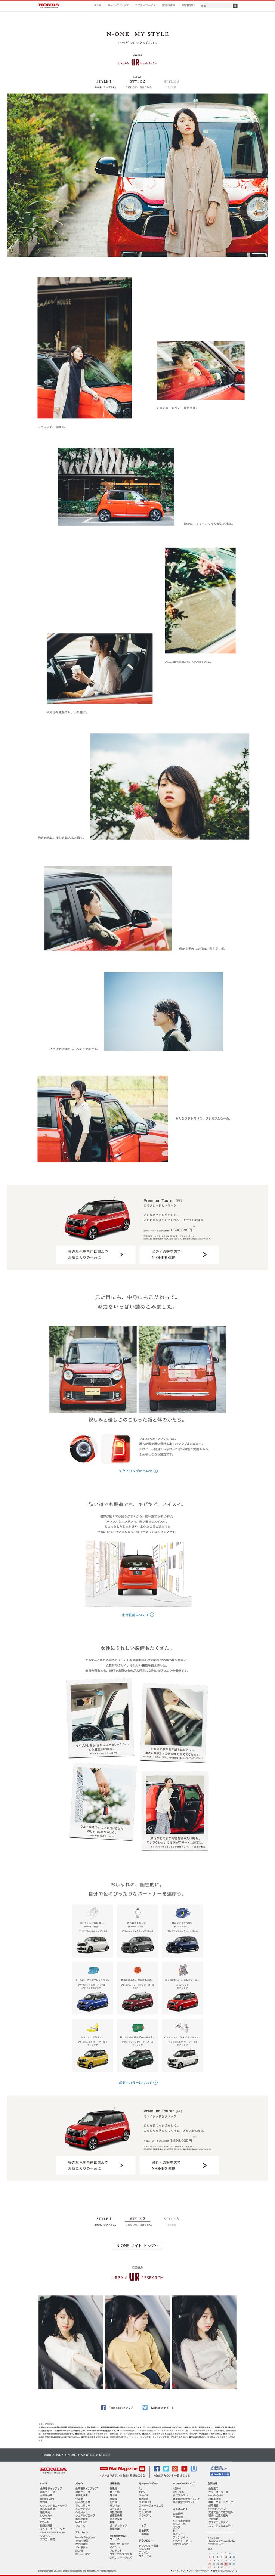 N-ONE MY STYLE -STYLE 2- http://www.honda.co.jp/N-ONE/mystyle/style2/